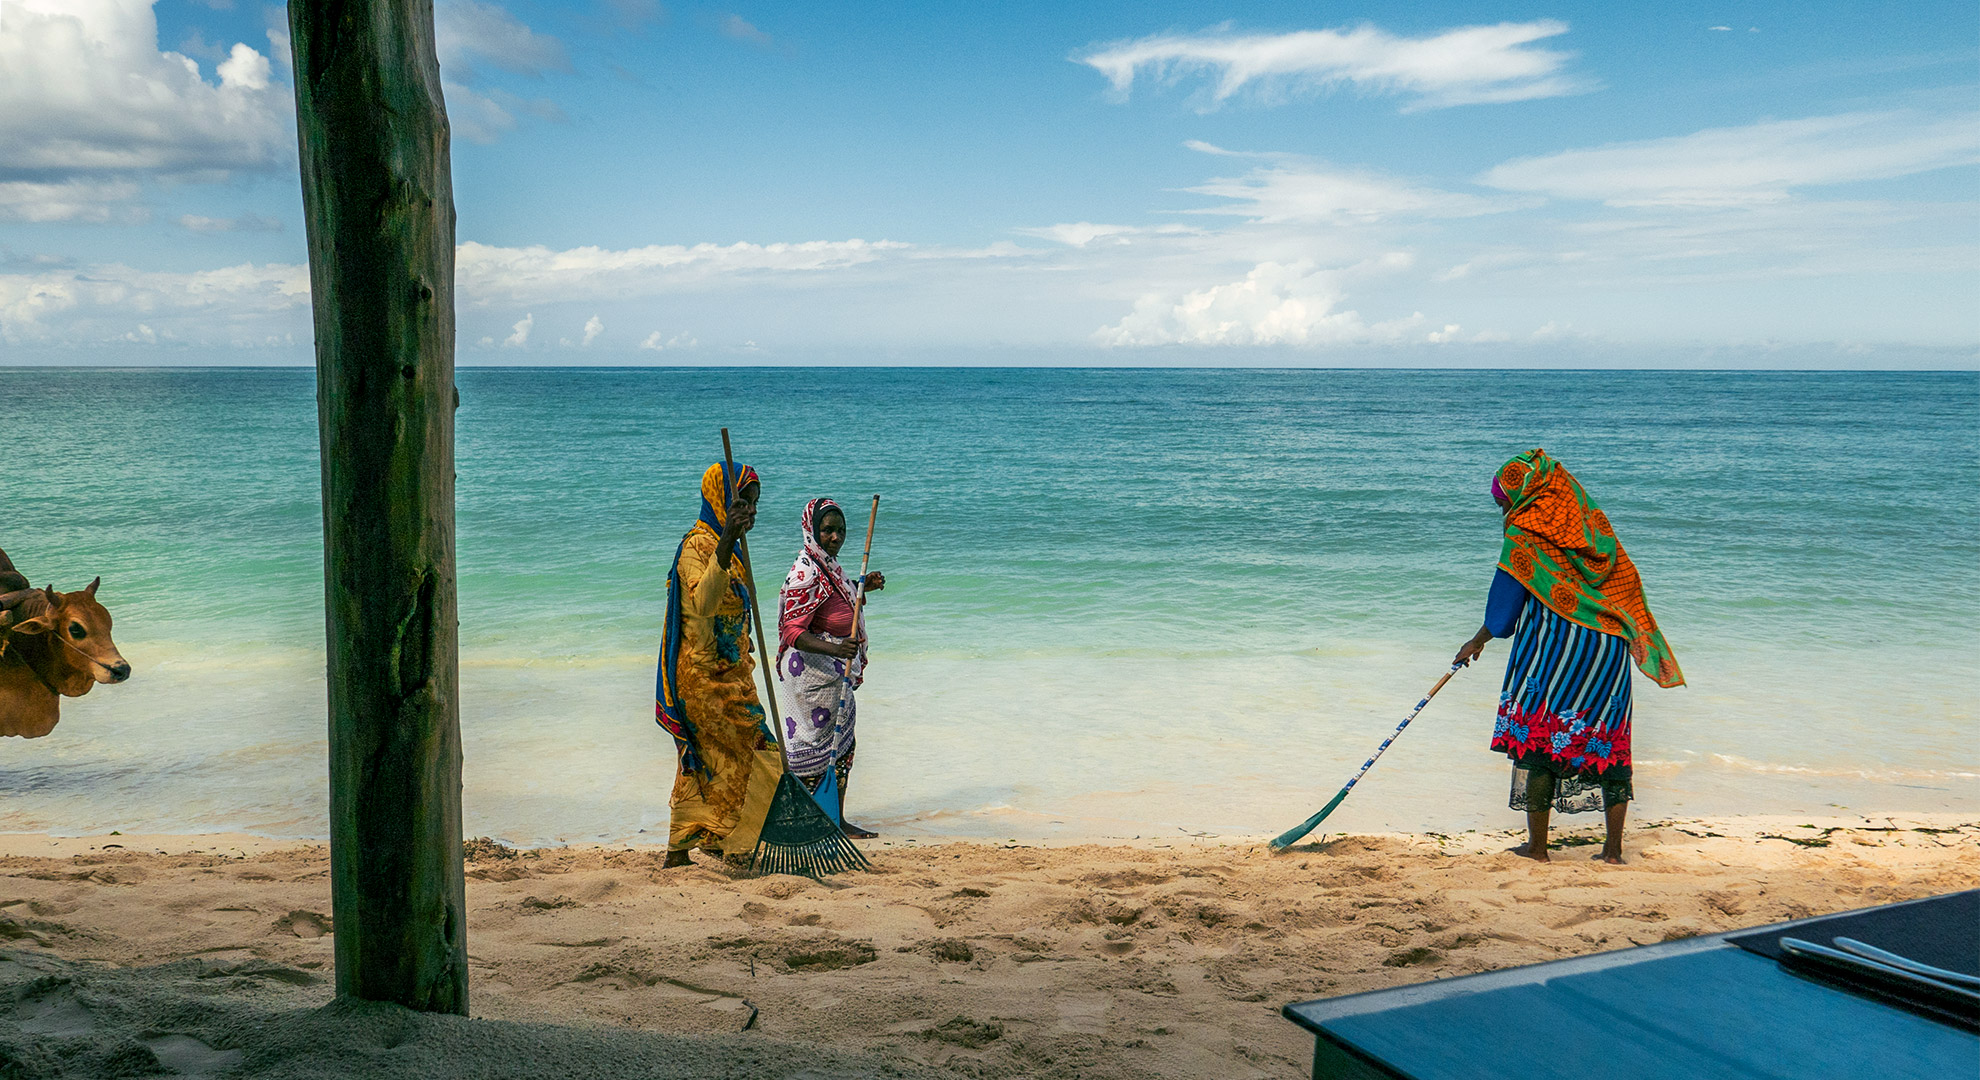 Women in traditional wraps on a beach